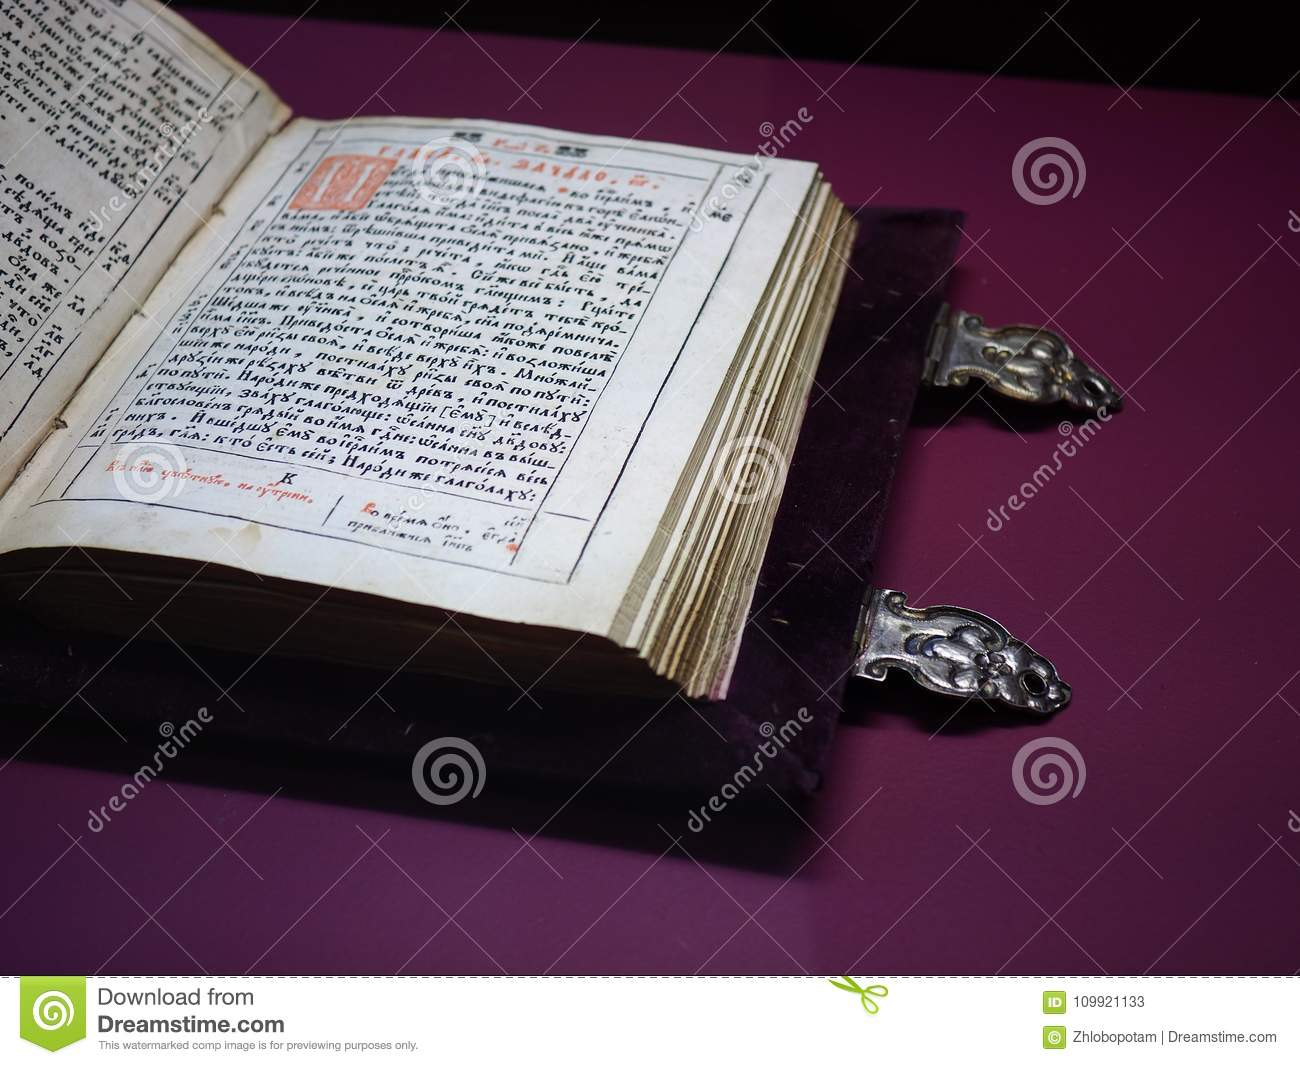 Cyrillic old medieval book stock image  Image of russian - 109921133